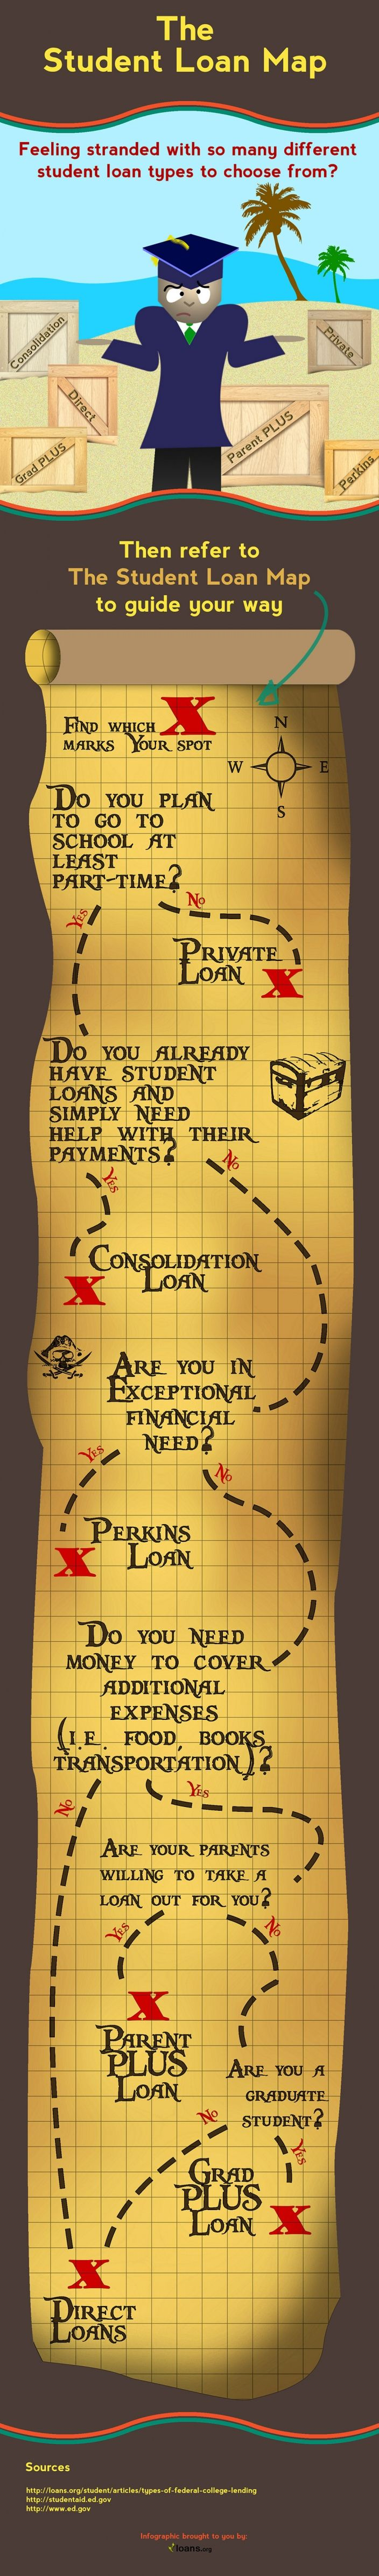 Arrr the pirate's guide to student loans! Find your way to debt-free treasure! Federal Student Loan Map | Infographic